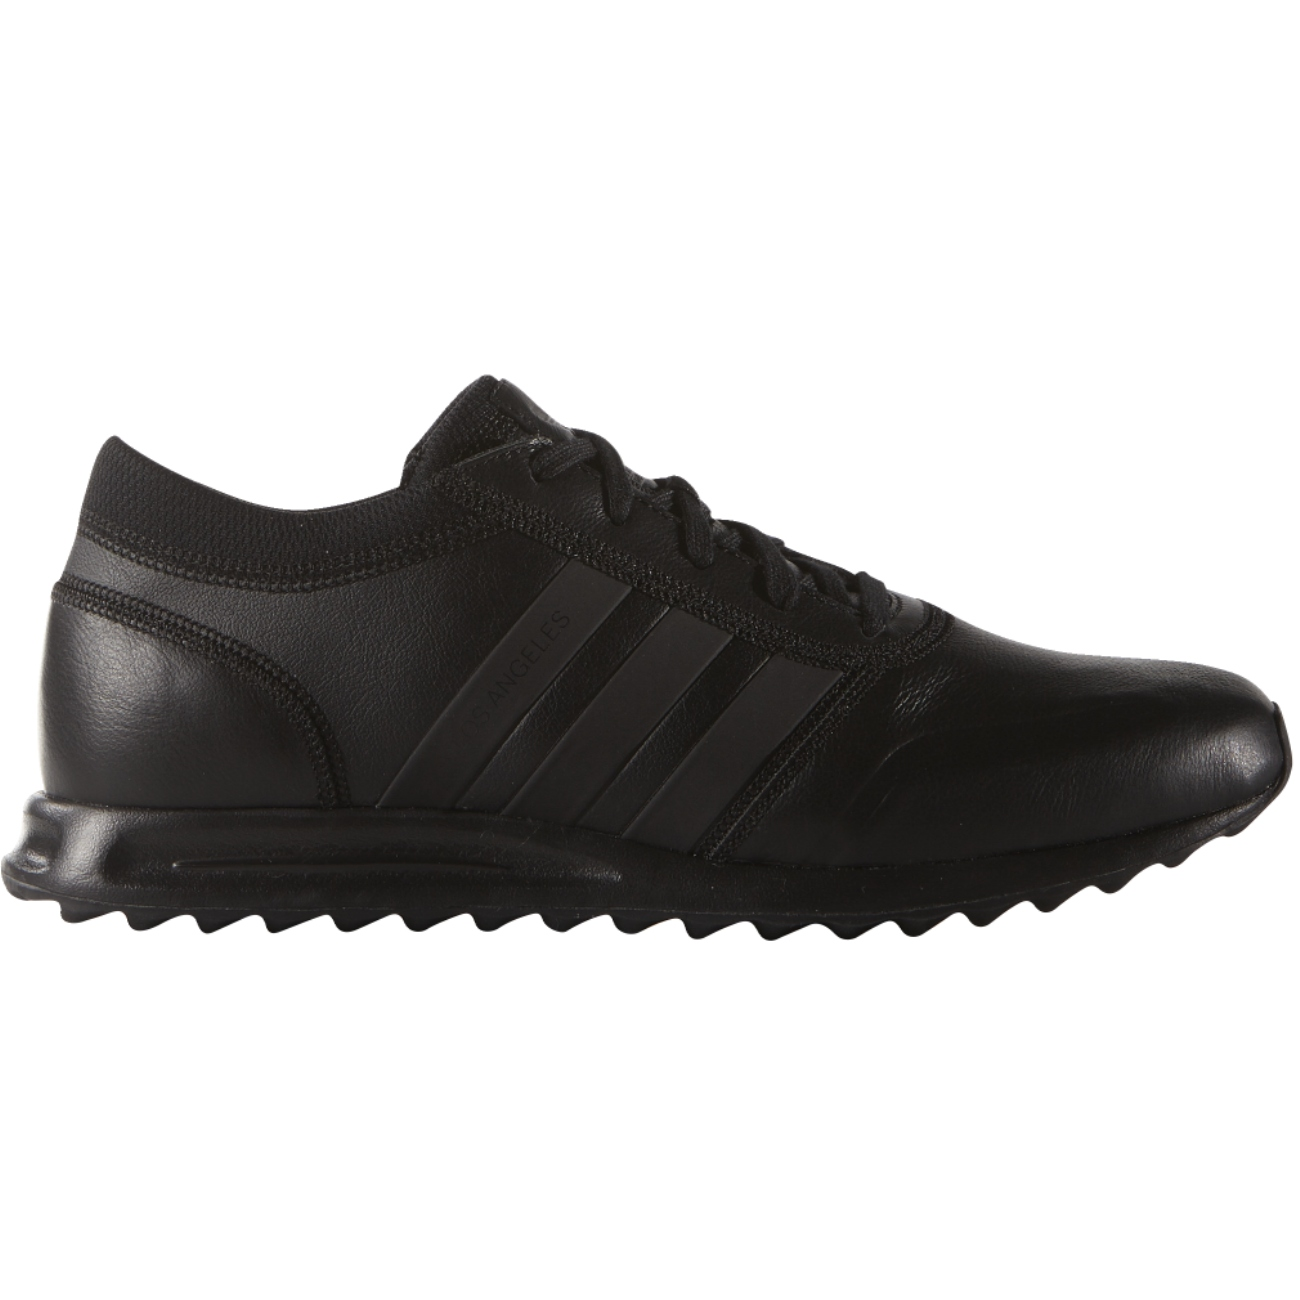 adidas originals los angeles schuhe sneaker herren damen schwarz leder. Black Bedroom Furniture Sets. Home Design Ideas